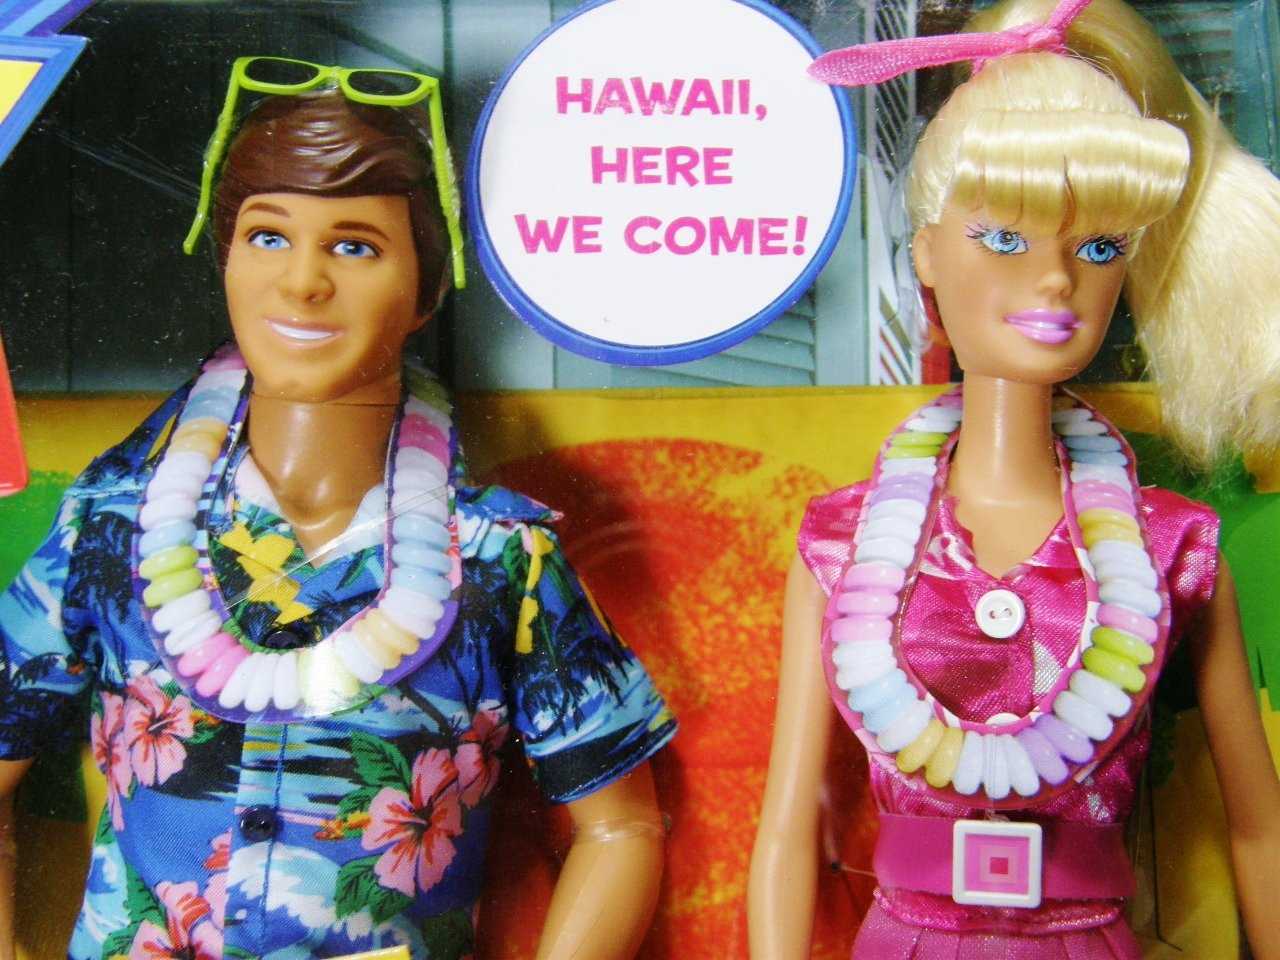 Disney W1493 Toy Story Barbie and Ken Hawaiian Vacation Doll Giftset  Amazon.co.uk   Toys   Games 46b248d656a